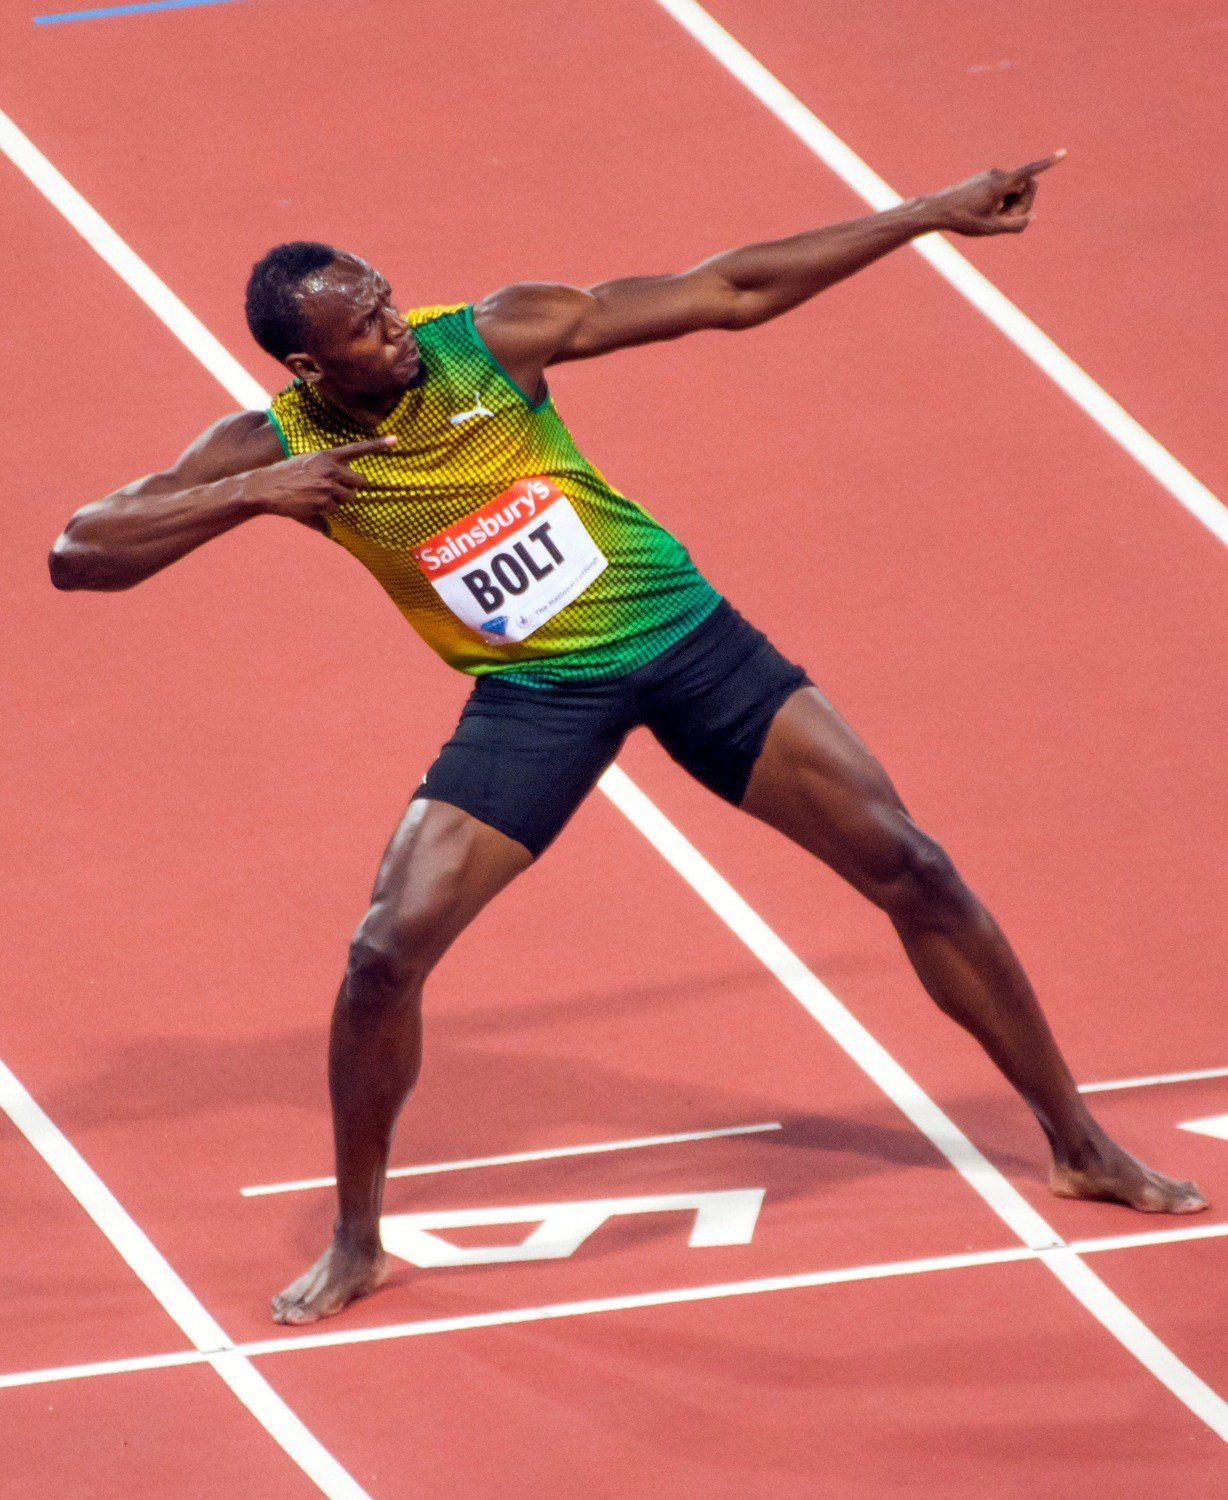 Usain Bolt celebrating the winning at London Anniversary Games in 2013